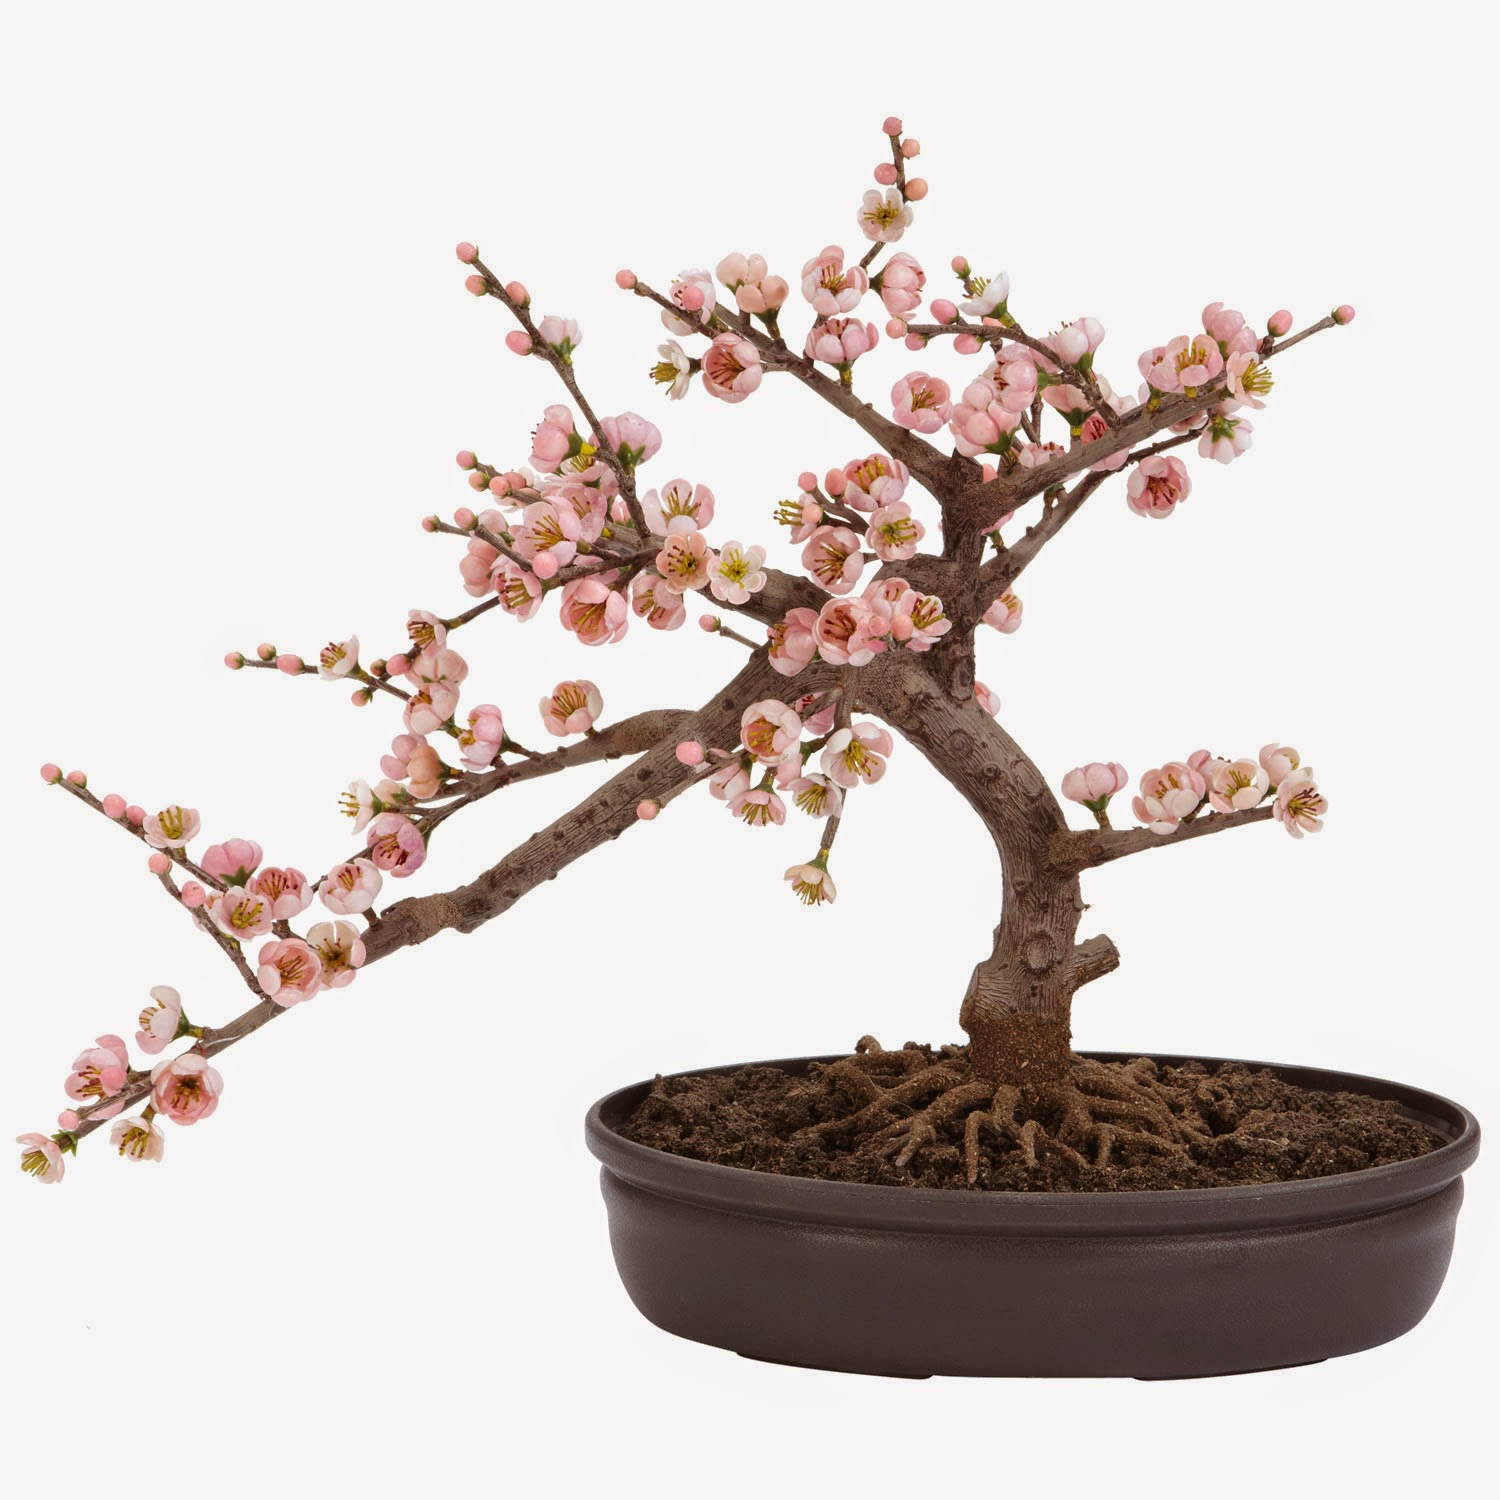 Quality Silk Plants Blog Artificial Bonsai Trees In Any Decor